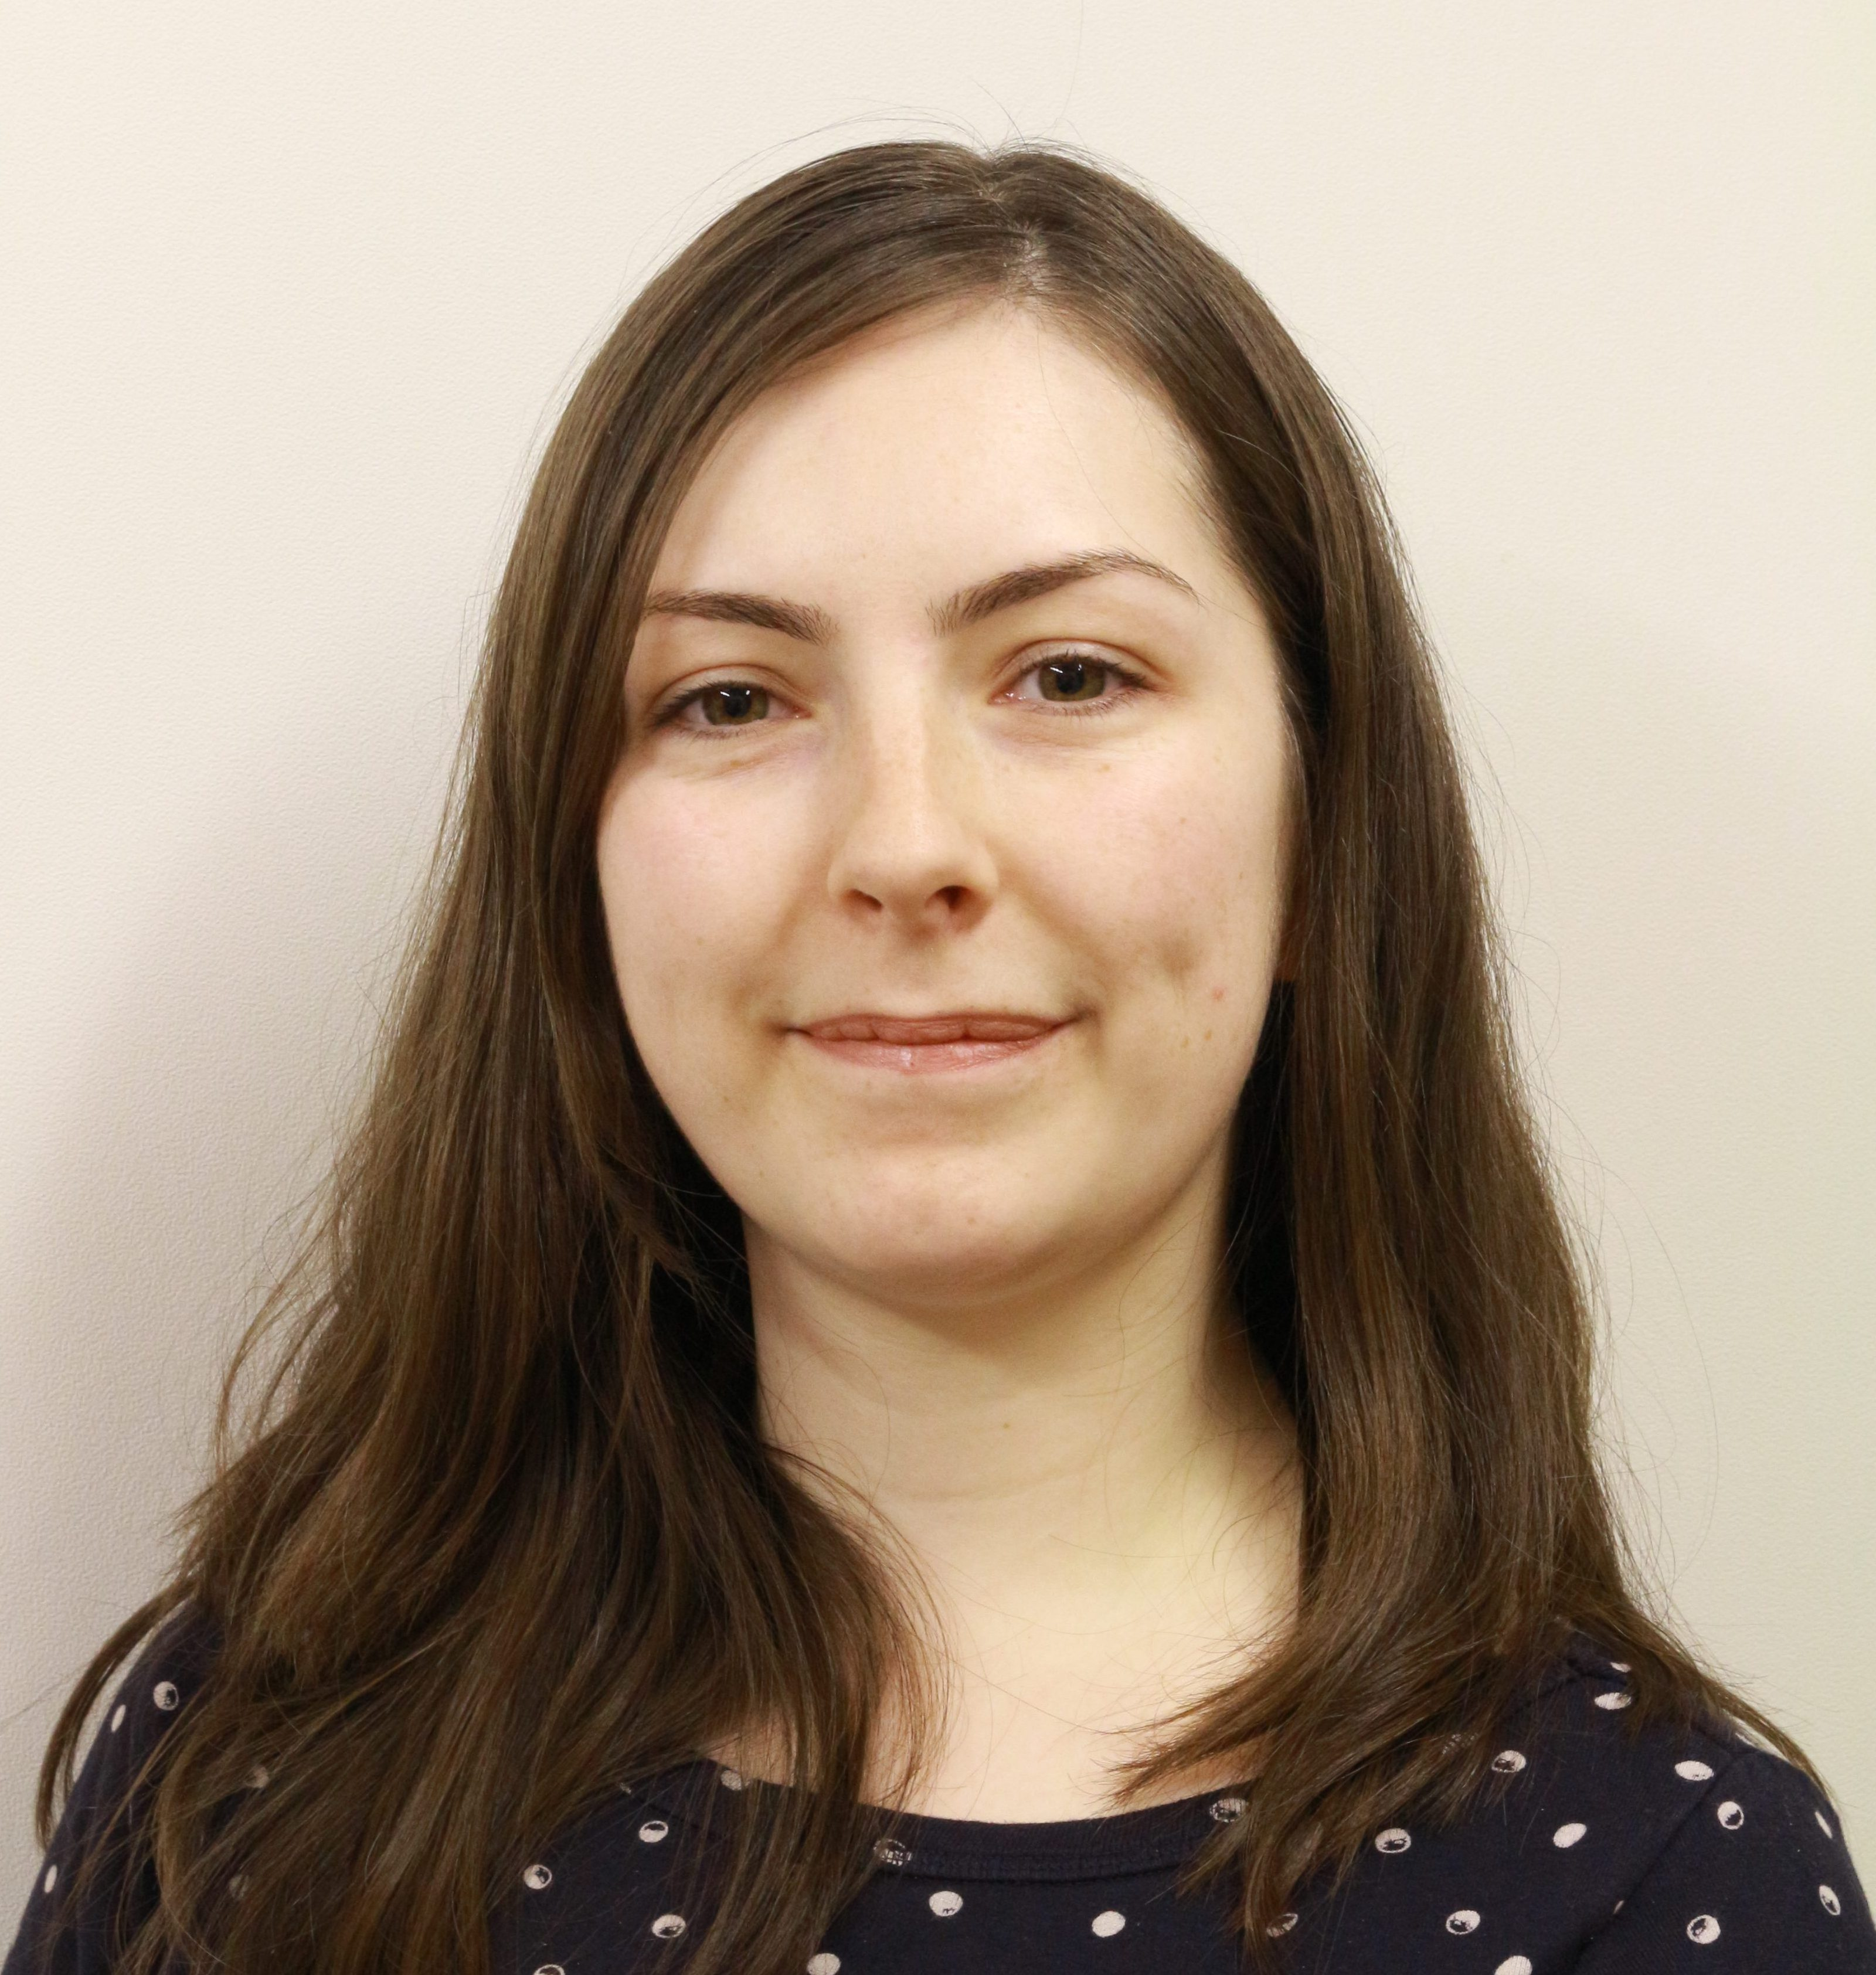 Case studies: Emma Brown-Andrews, trainee 2017-18 with Tommy Flowers SCITT Milton Keynes